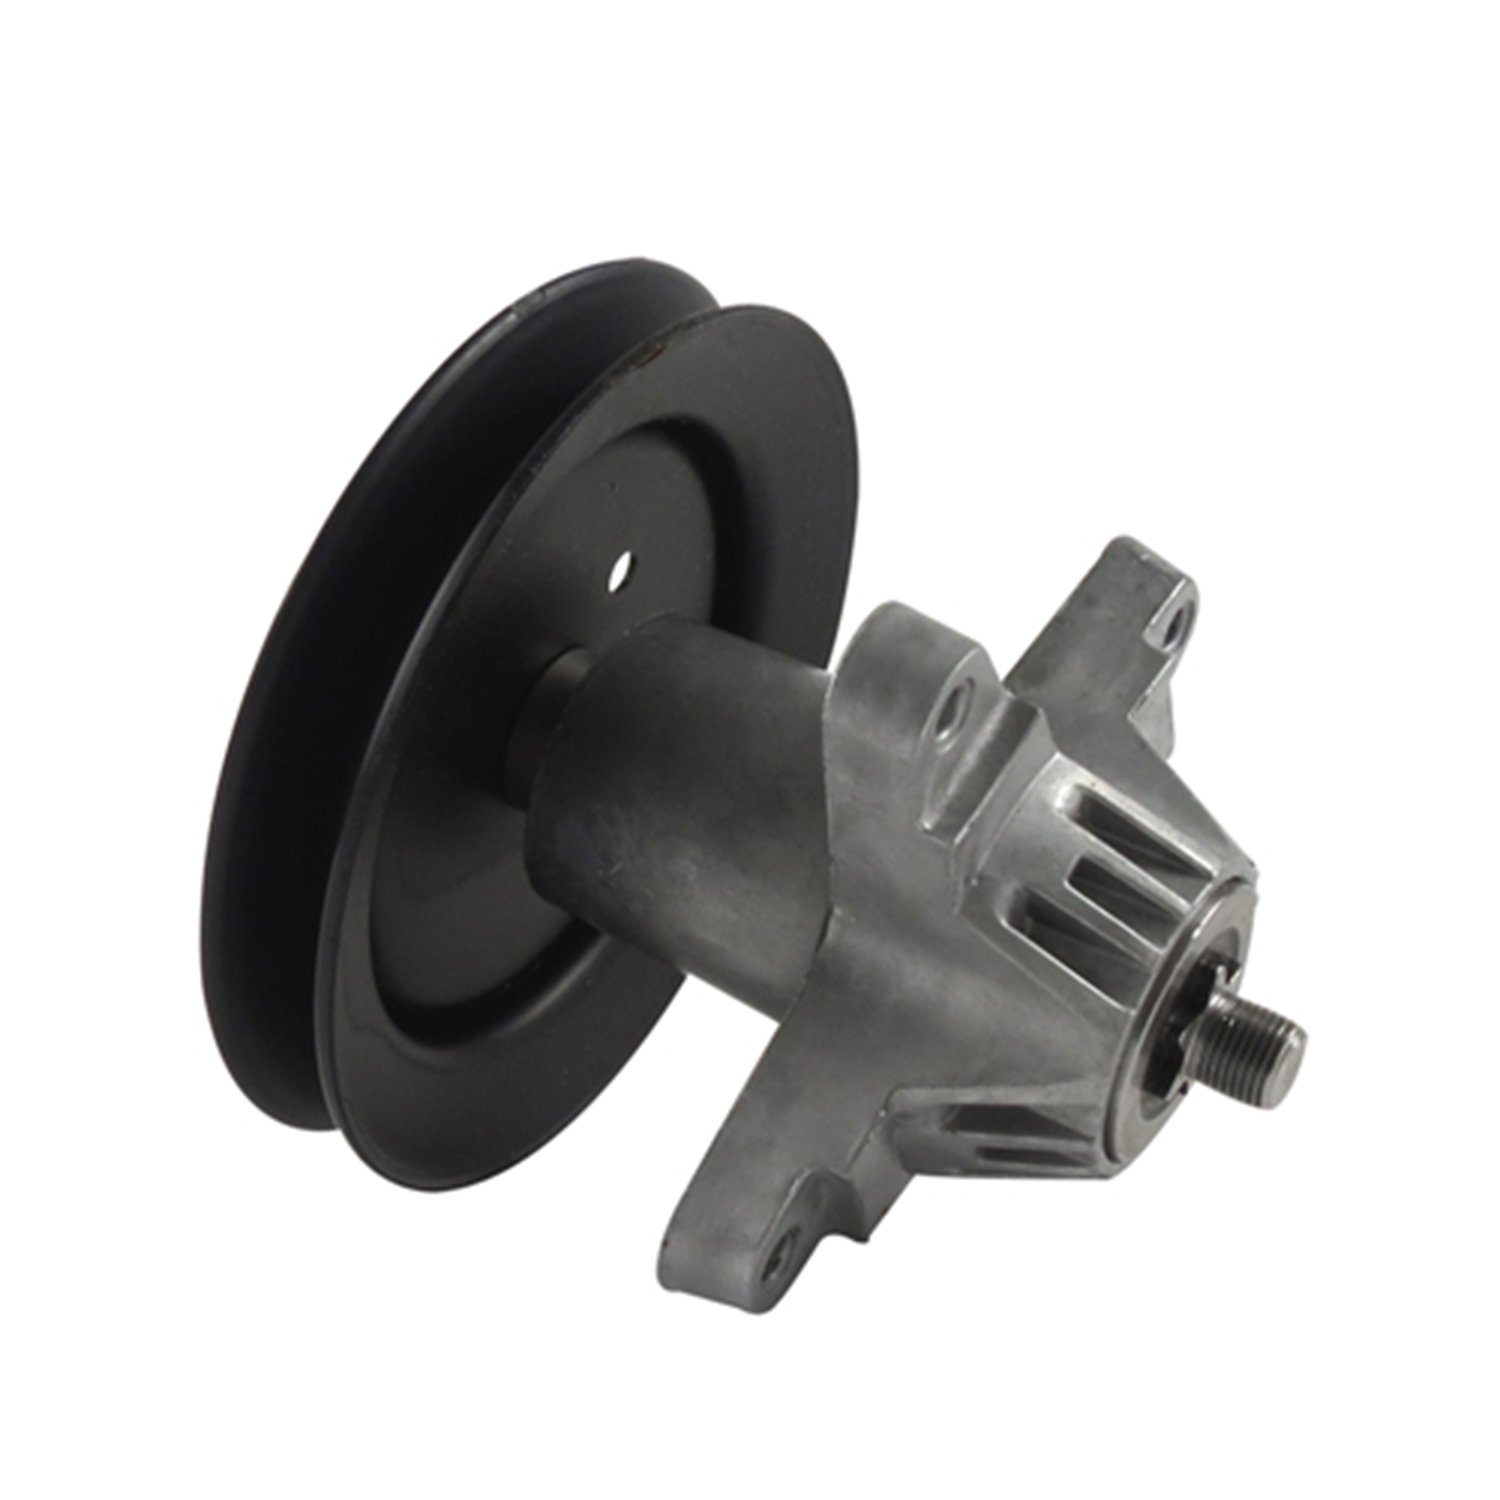 Spindle Pulley For Riding Mowers : Mtd a spindle assembly pulley replacement for